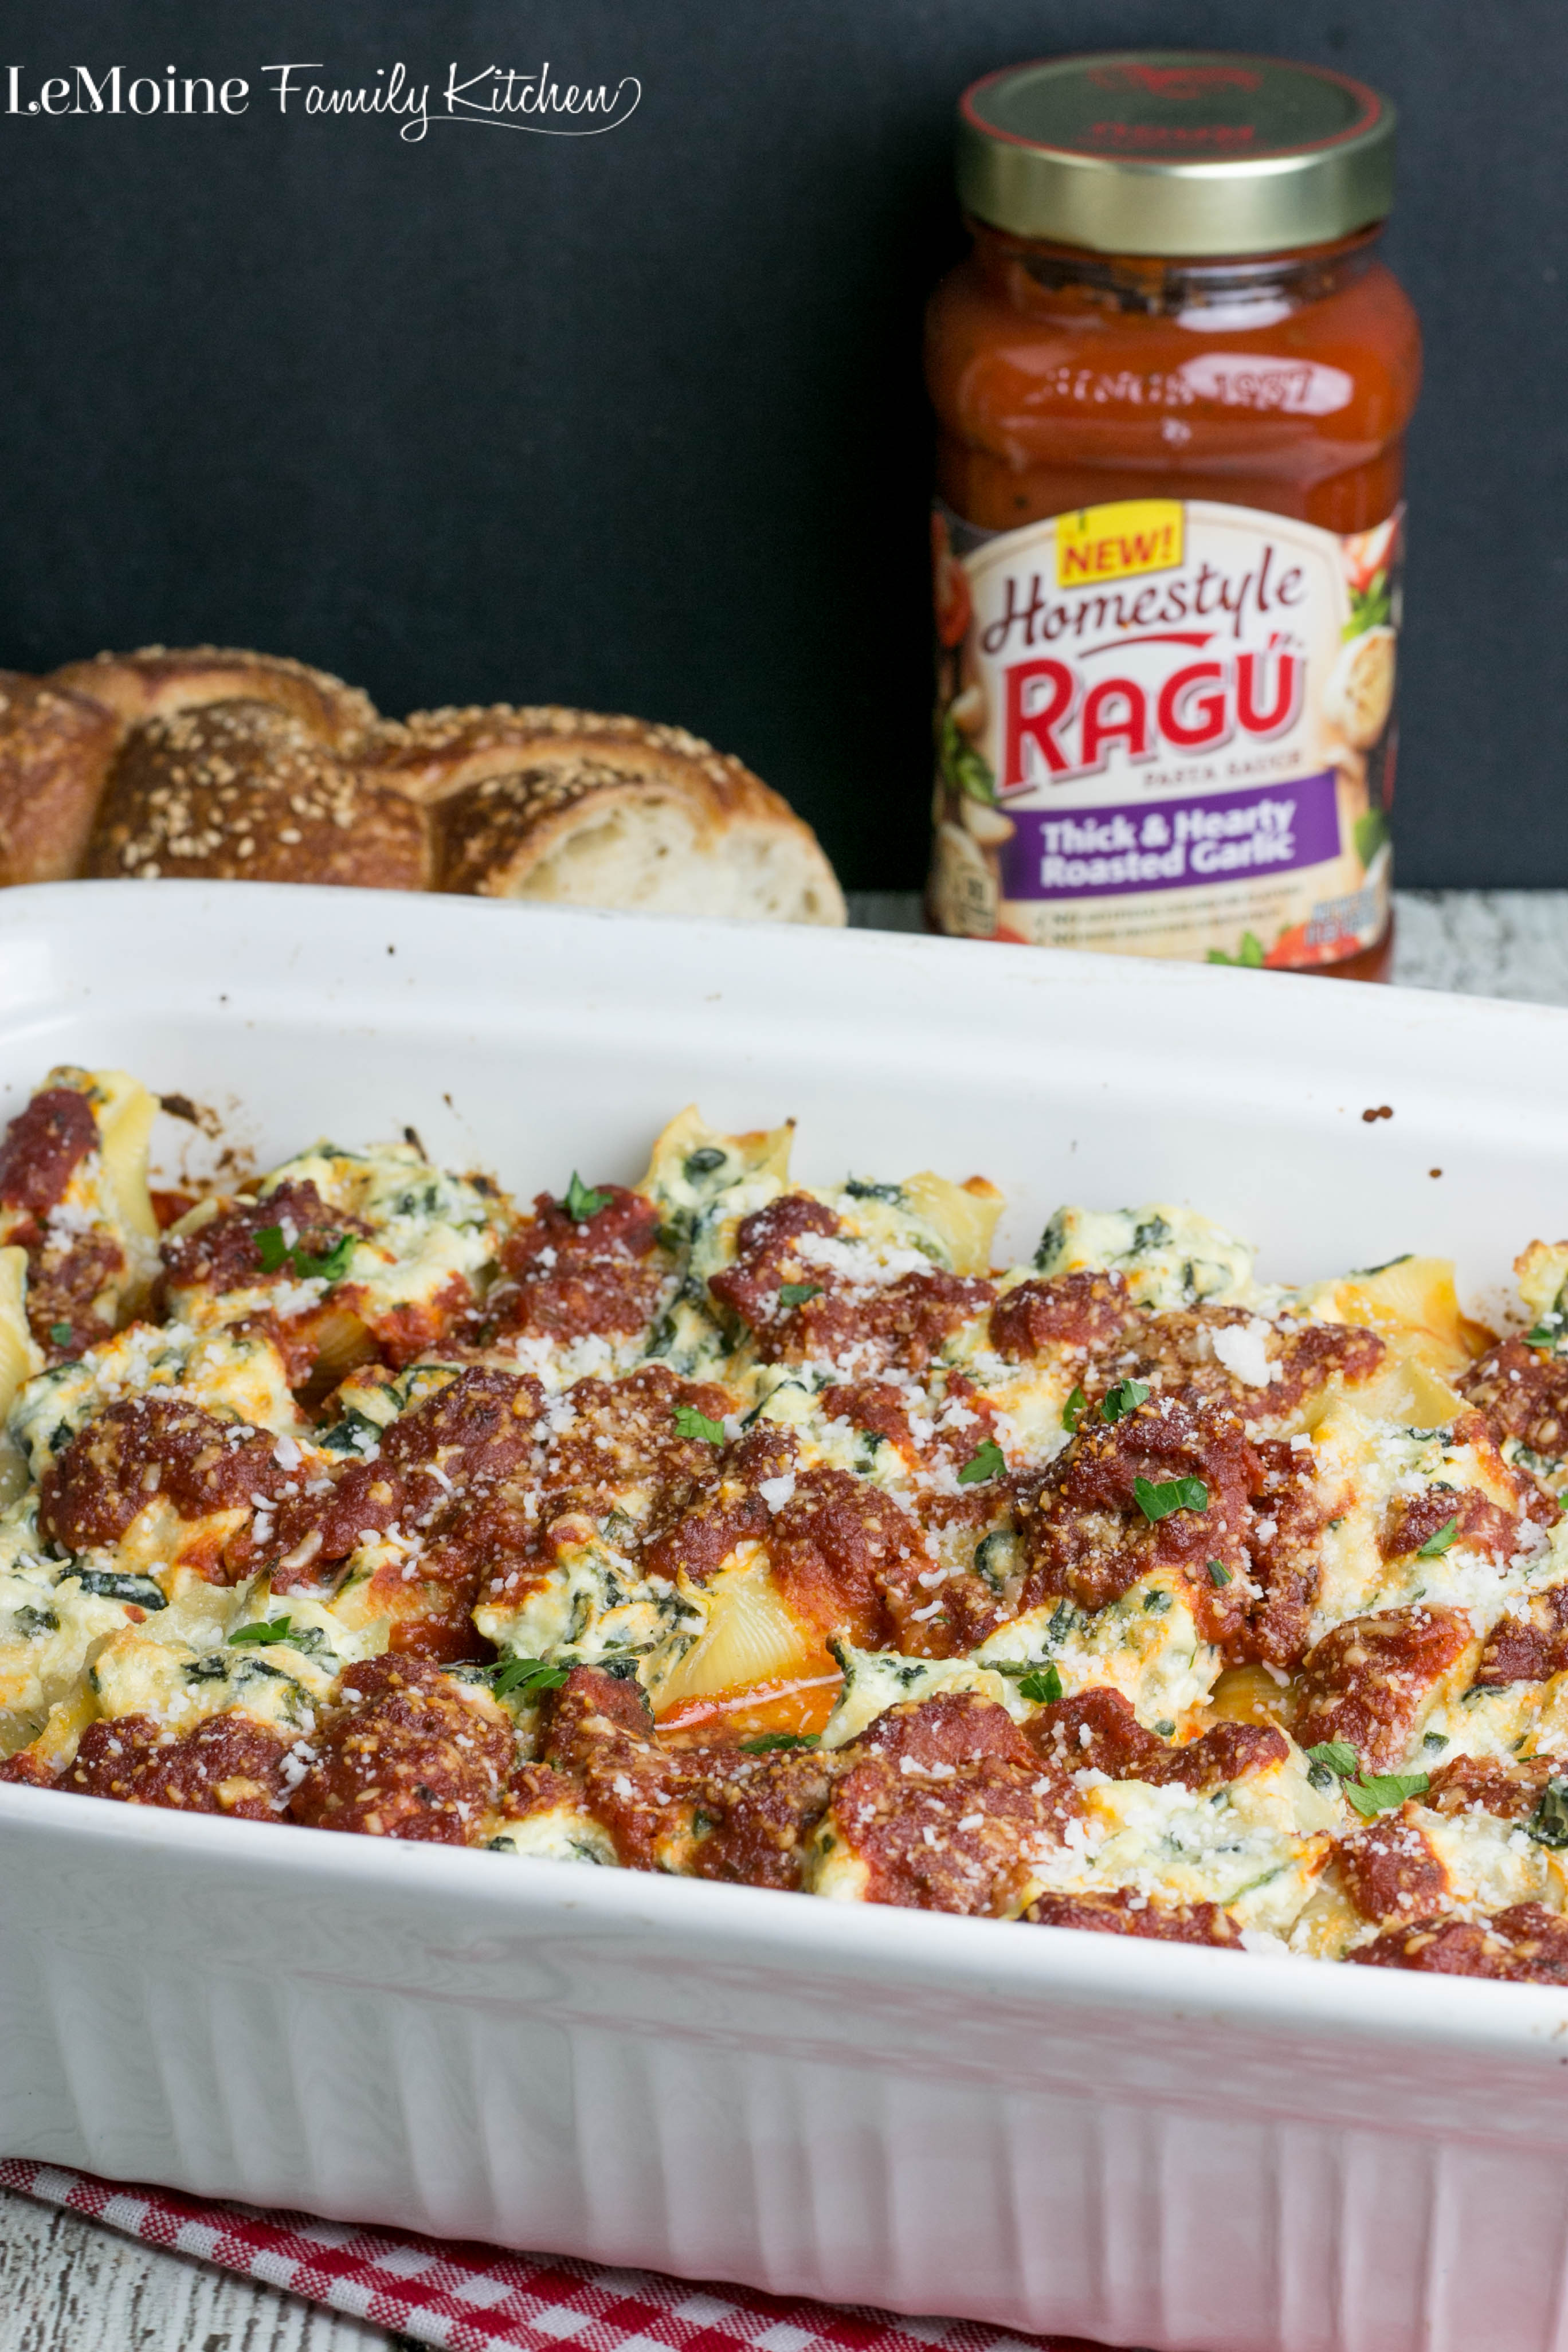 Spinach Artichoke Stuffed Shells. This recipe is certainly #SimmeredinTradition with the new Ragu #HomestyleSauces. The filling is cheesy and so flavorful! This is a perfect easy family meal. #ad